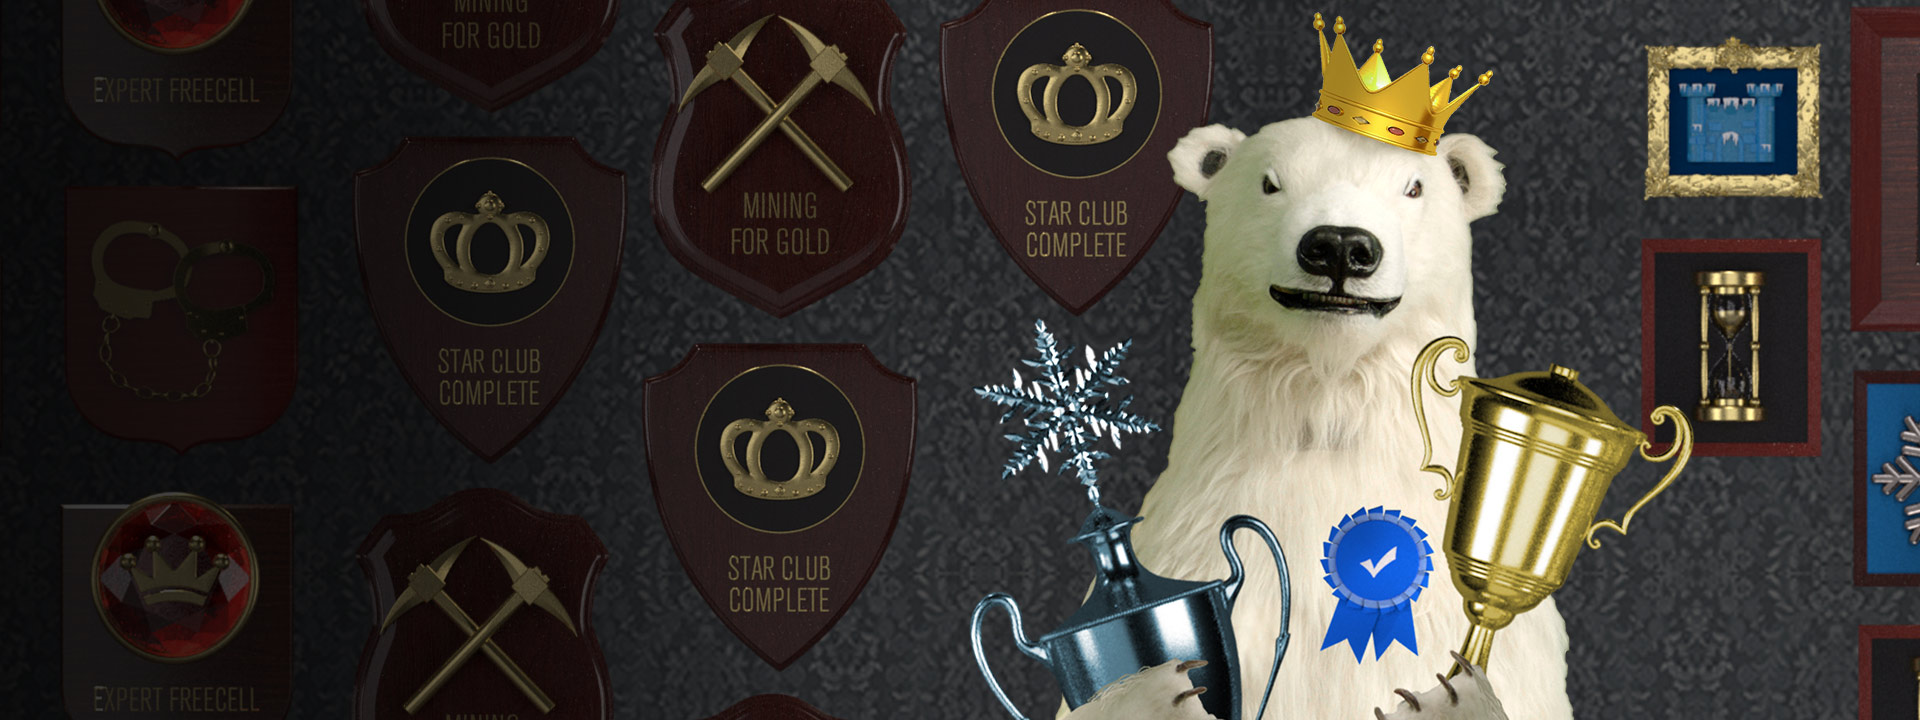 Polar bear holding up awards and trophies